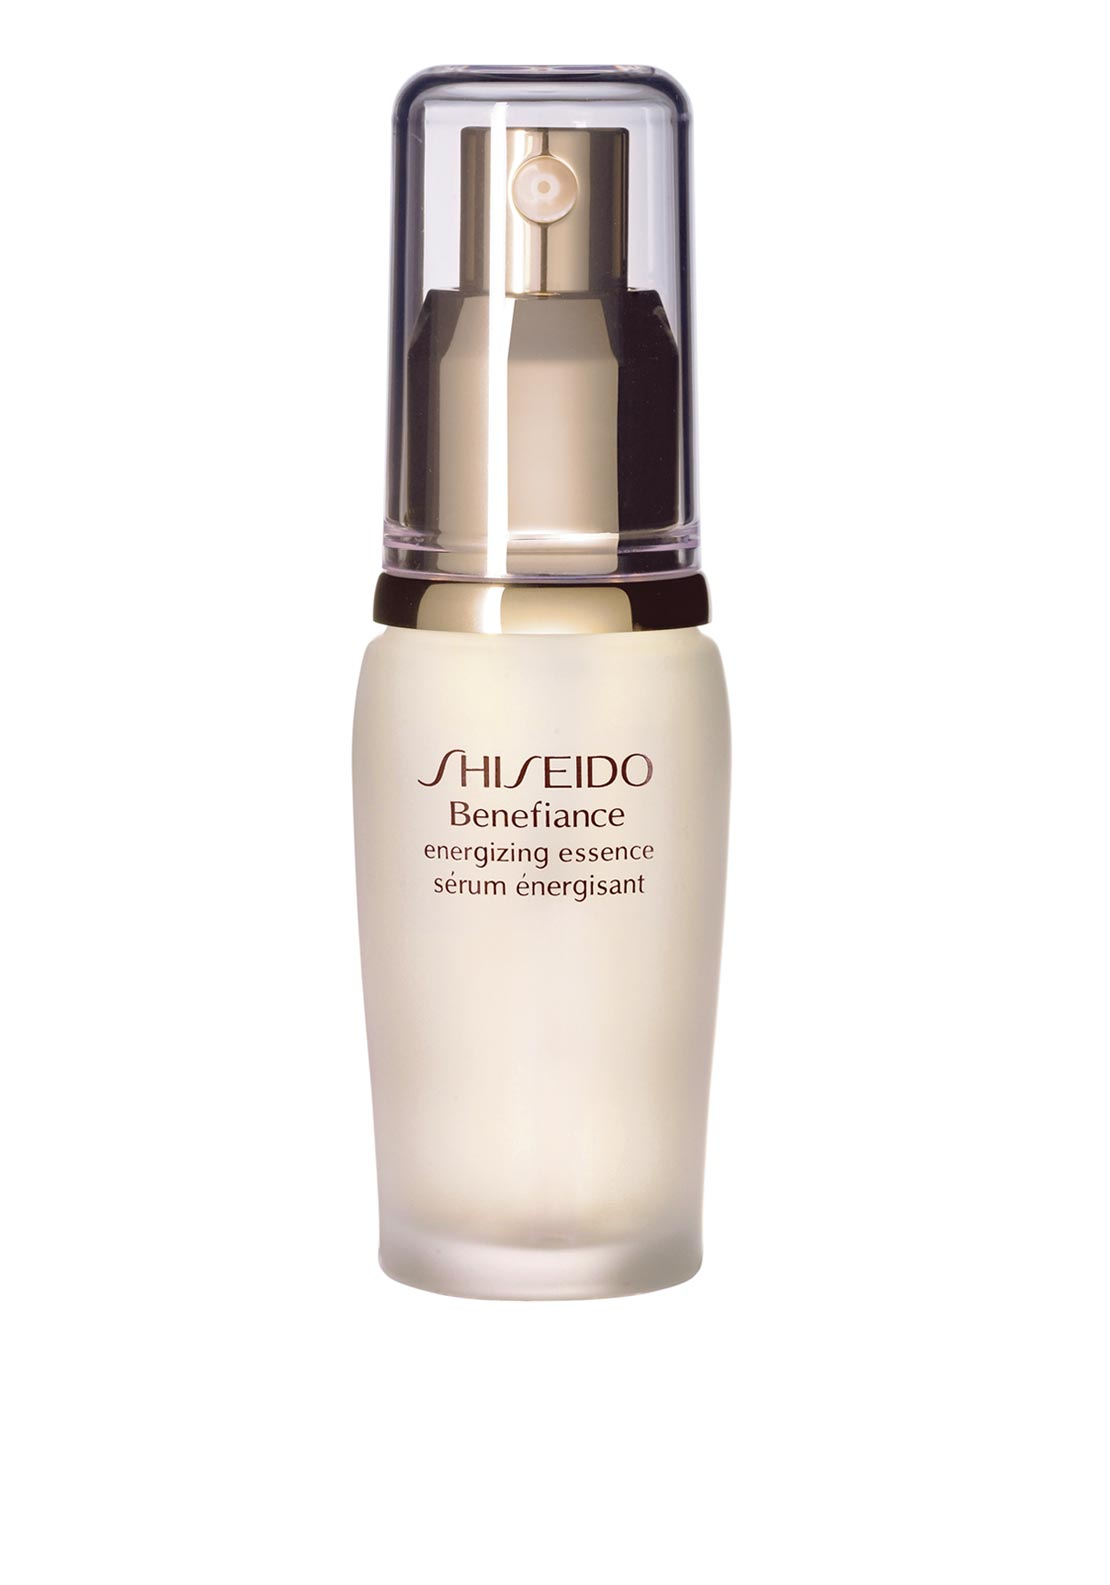 Shiseido Benefiance Energizing Essence Serum, 30ml